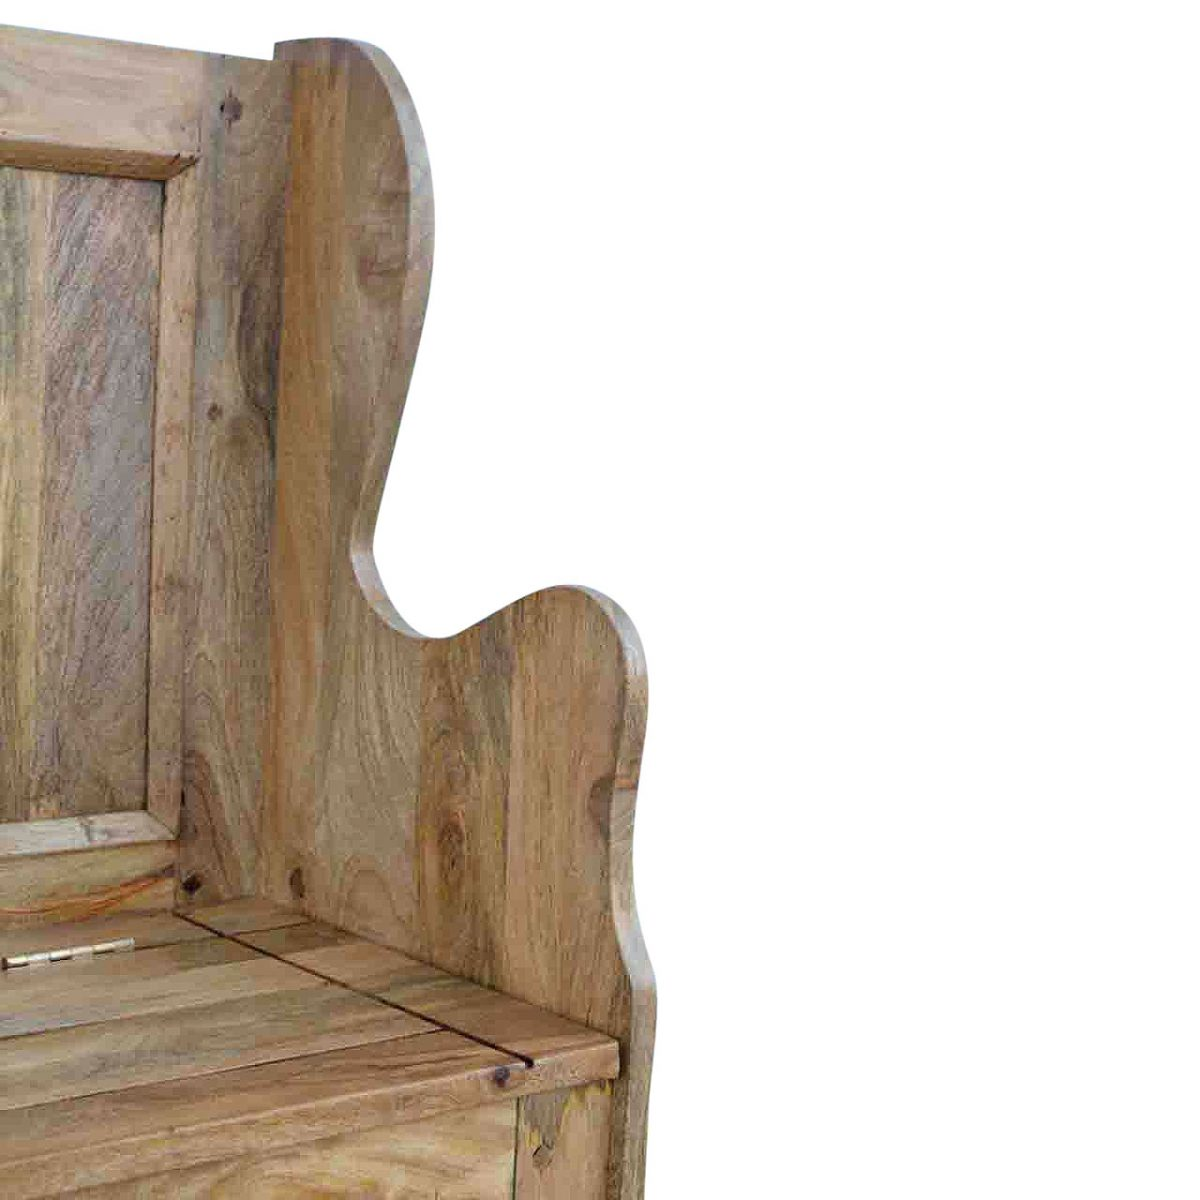 Marvelous Solid Oak Finished Mango Wood Hall Storage Bench Monks Bench Available 4Th November Furniture 4 Life Uwap Interior Chair Design Uwaporg